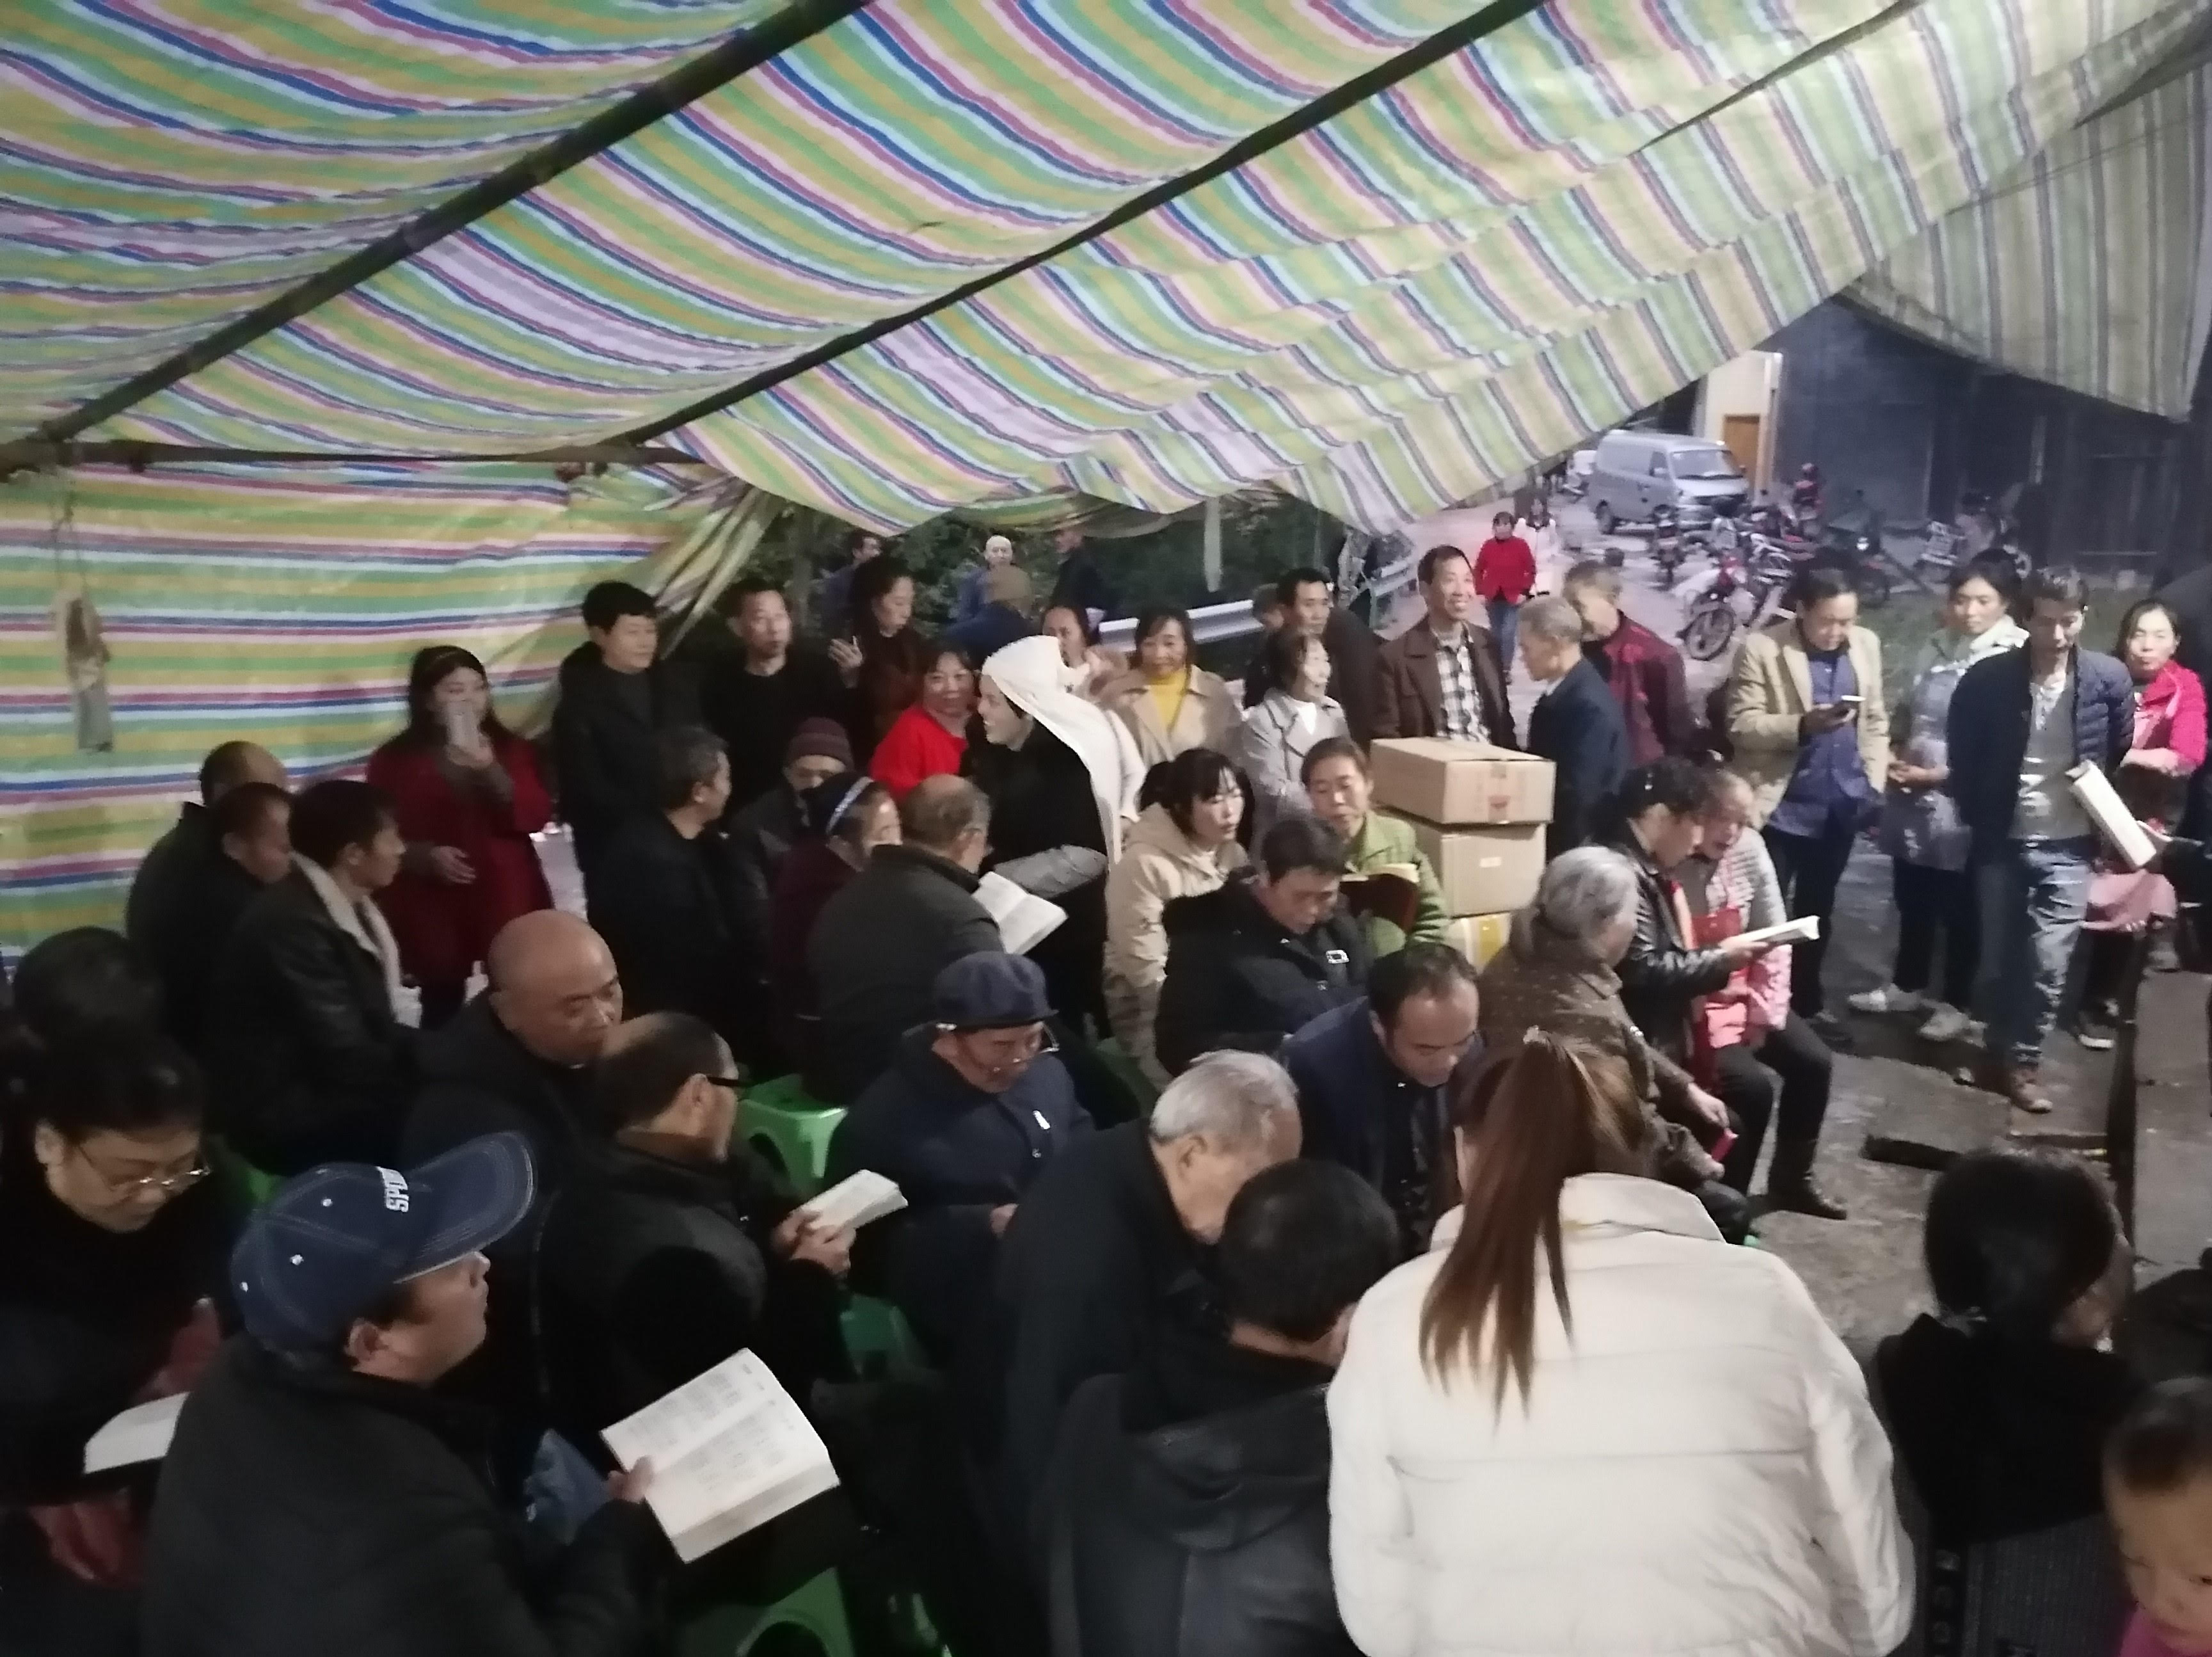 U.S.-China squabbles obscure Chinese Christians